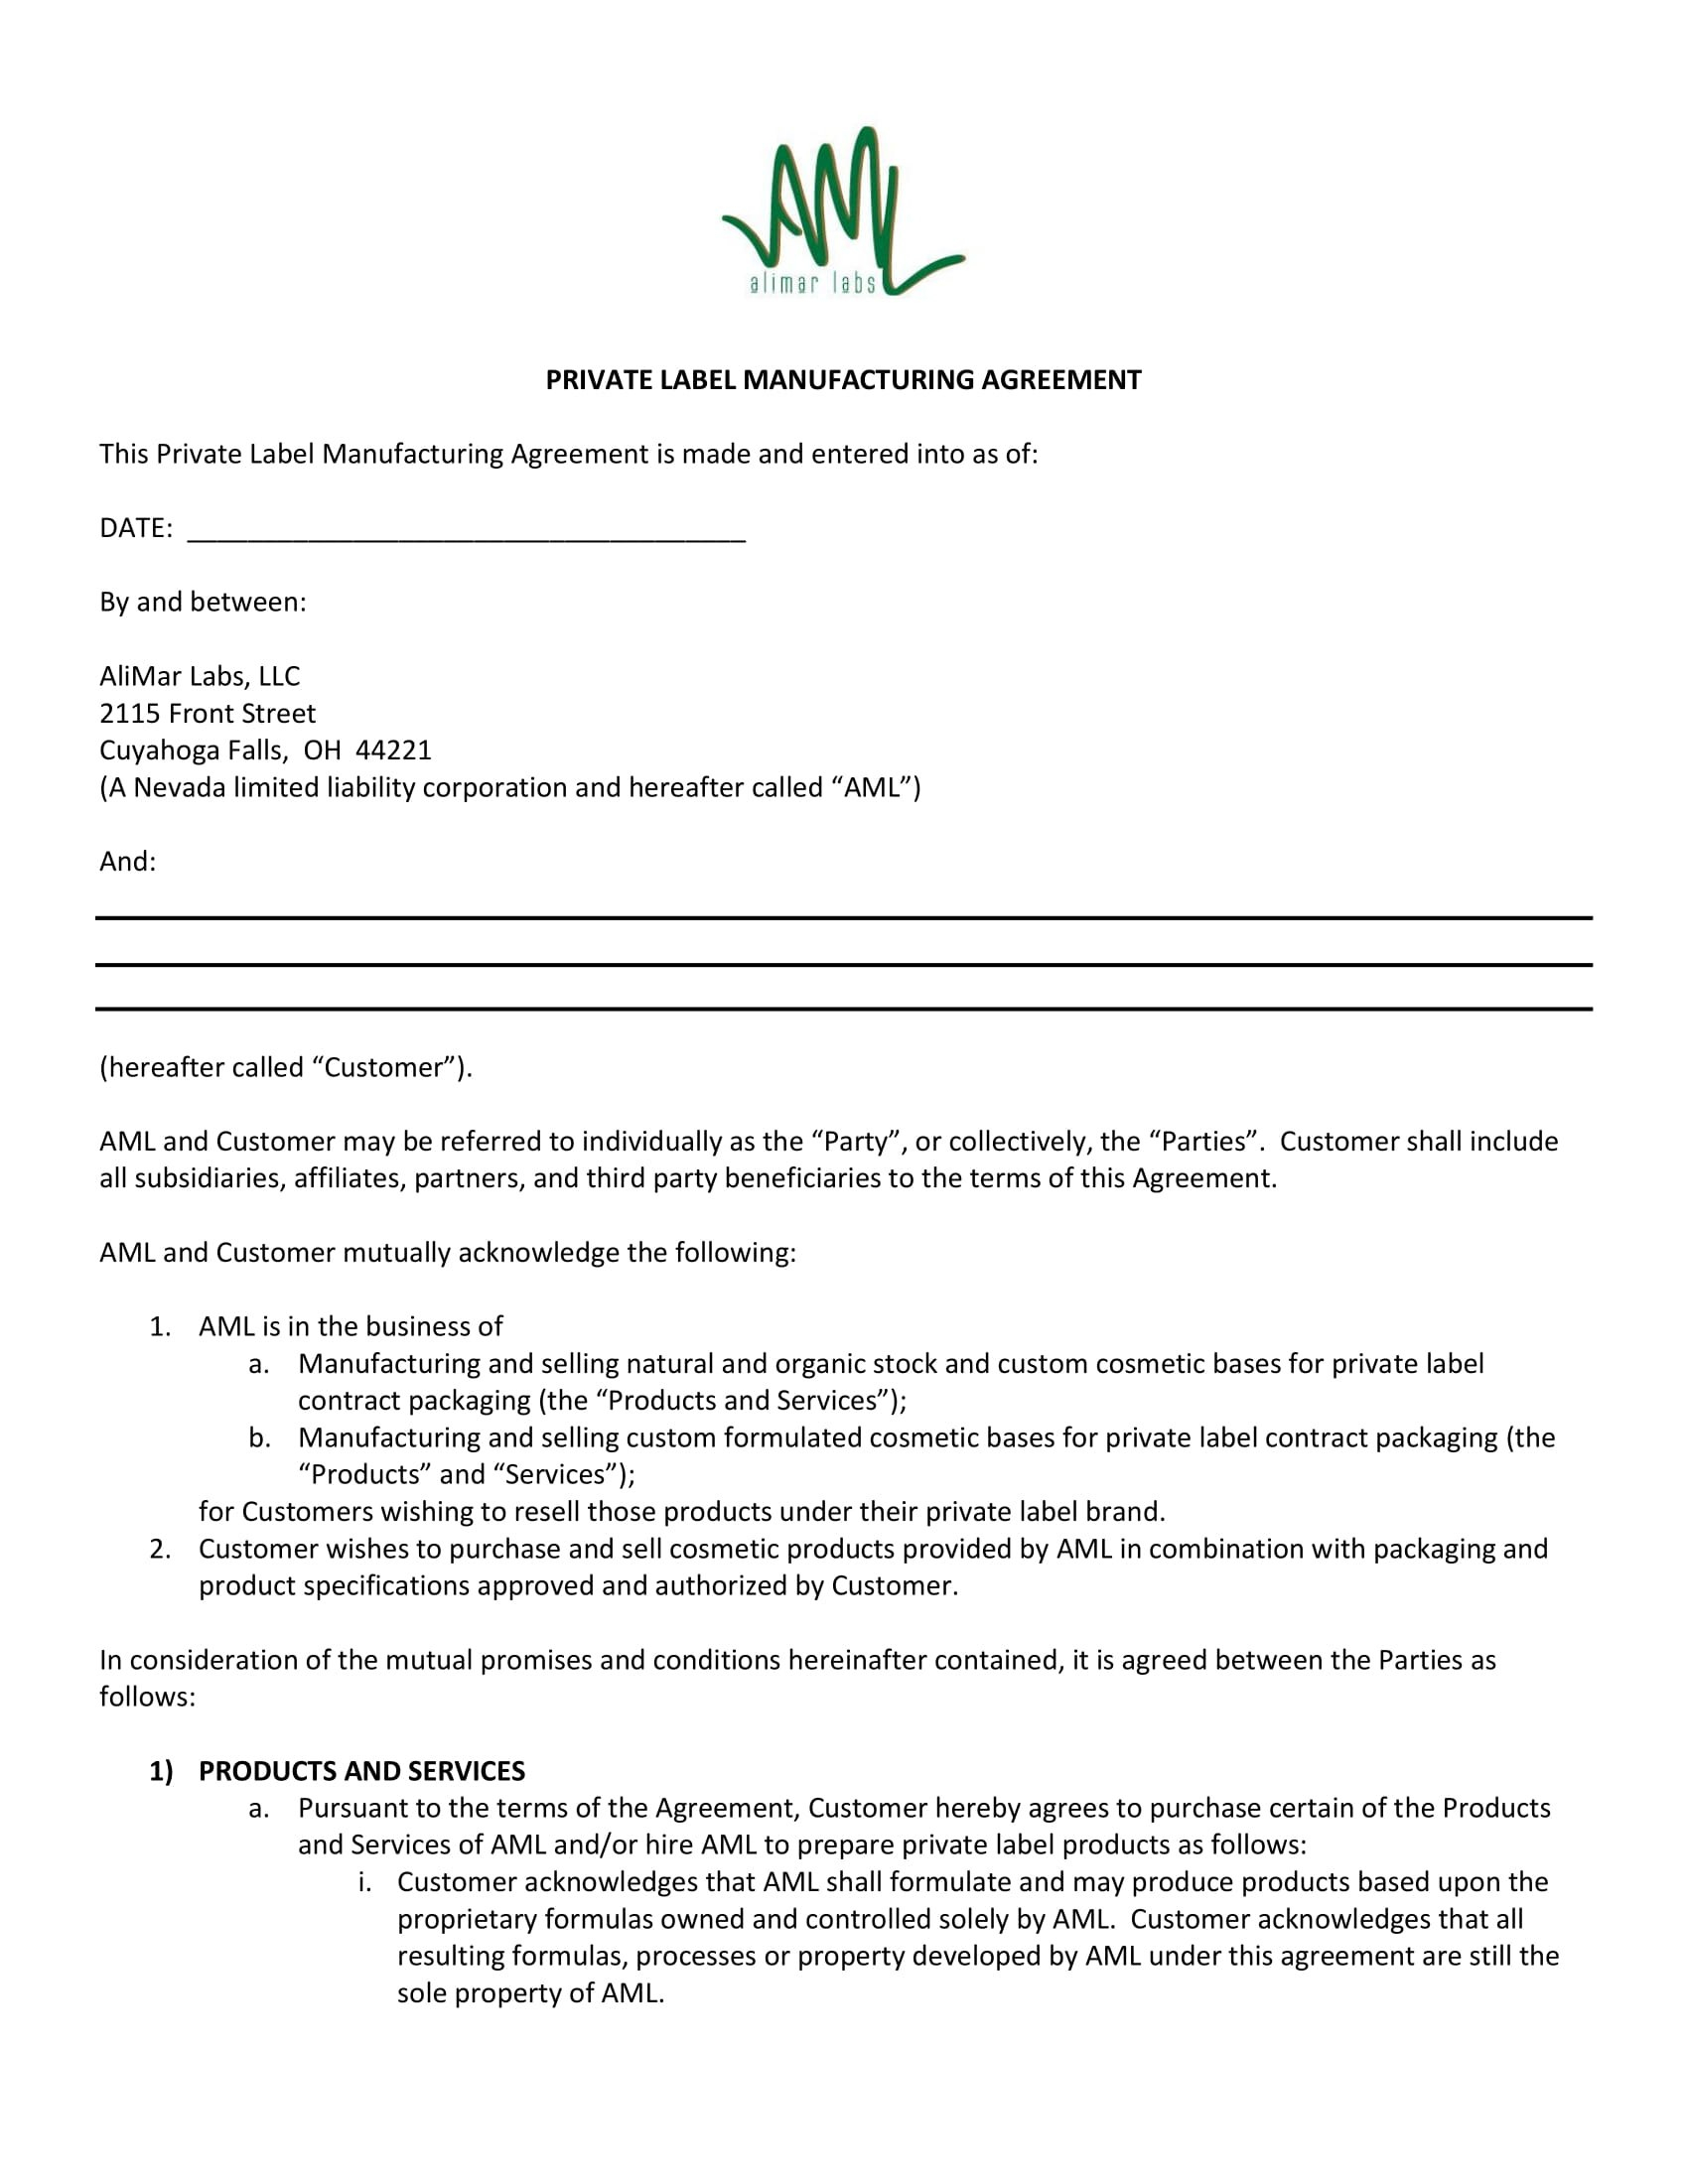 Contract Manufacturing Agreement Template Examples  Pdf Google With Regard To Toll Processing Agreement Template